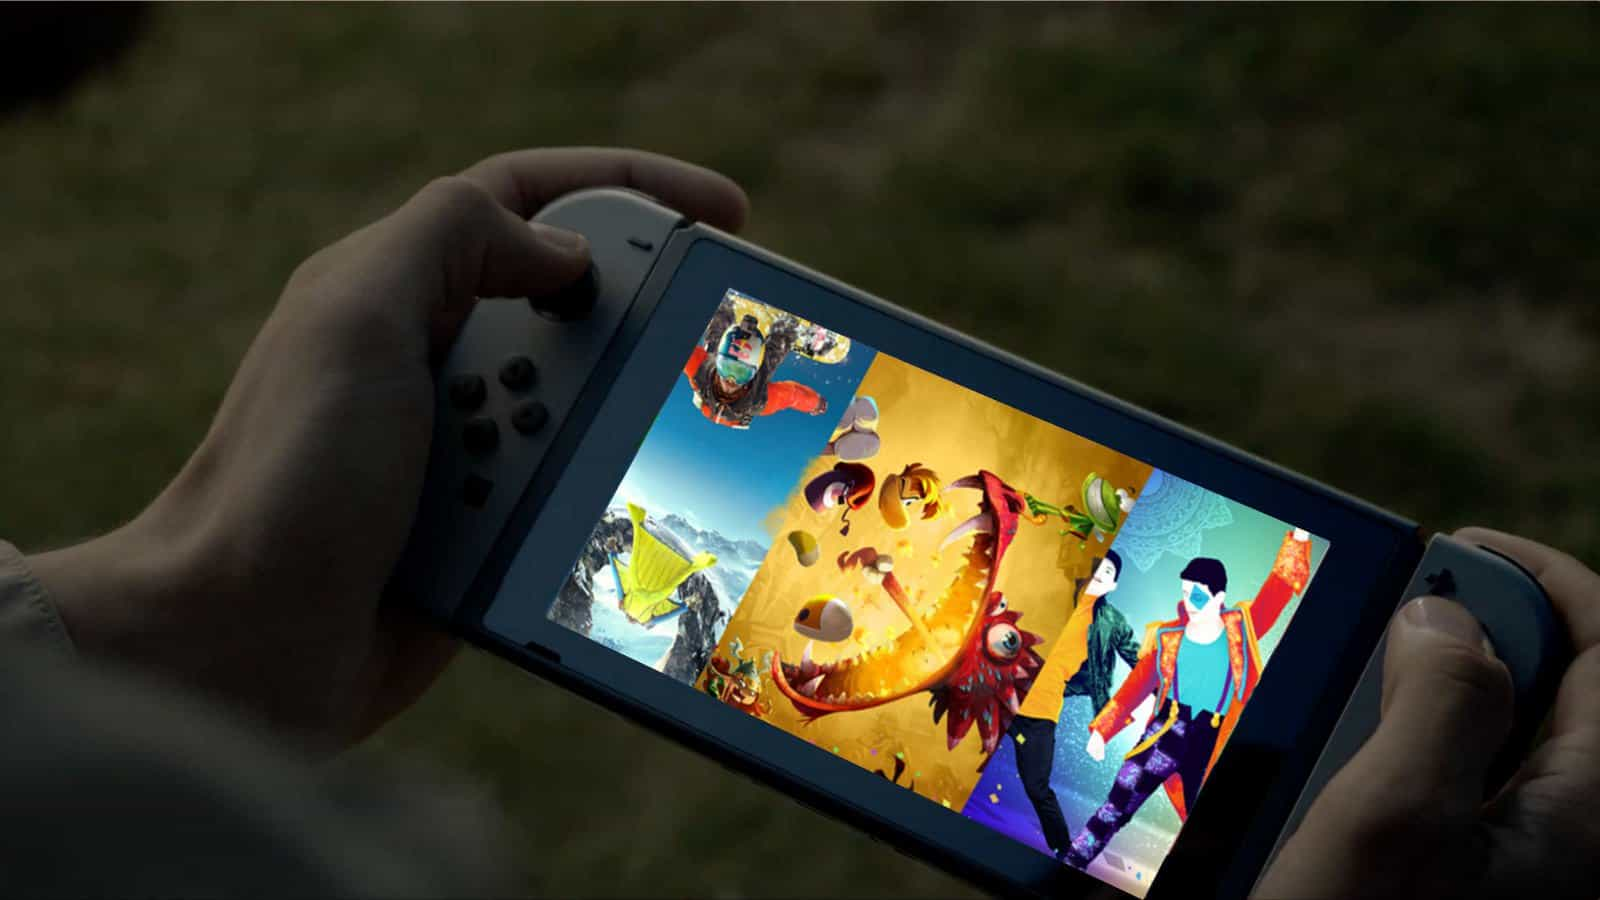 Vamers - FYI - Video Gaming - Three Ubisoft Nintendo Switch games are coming this year - 02